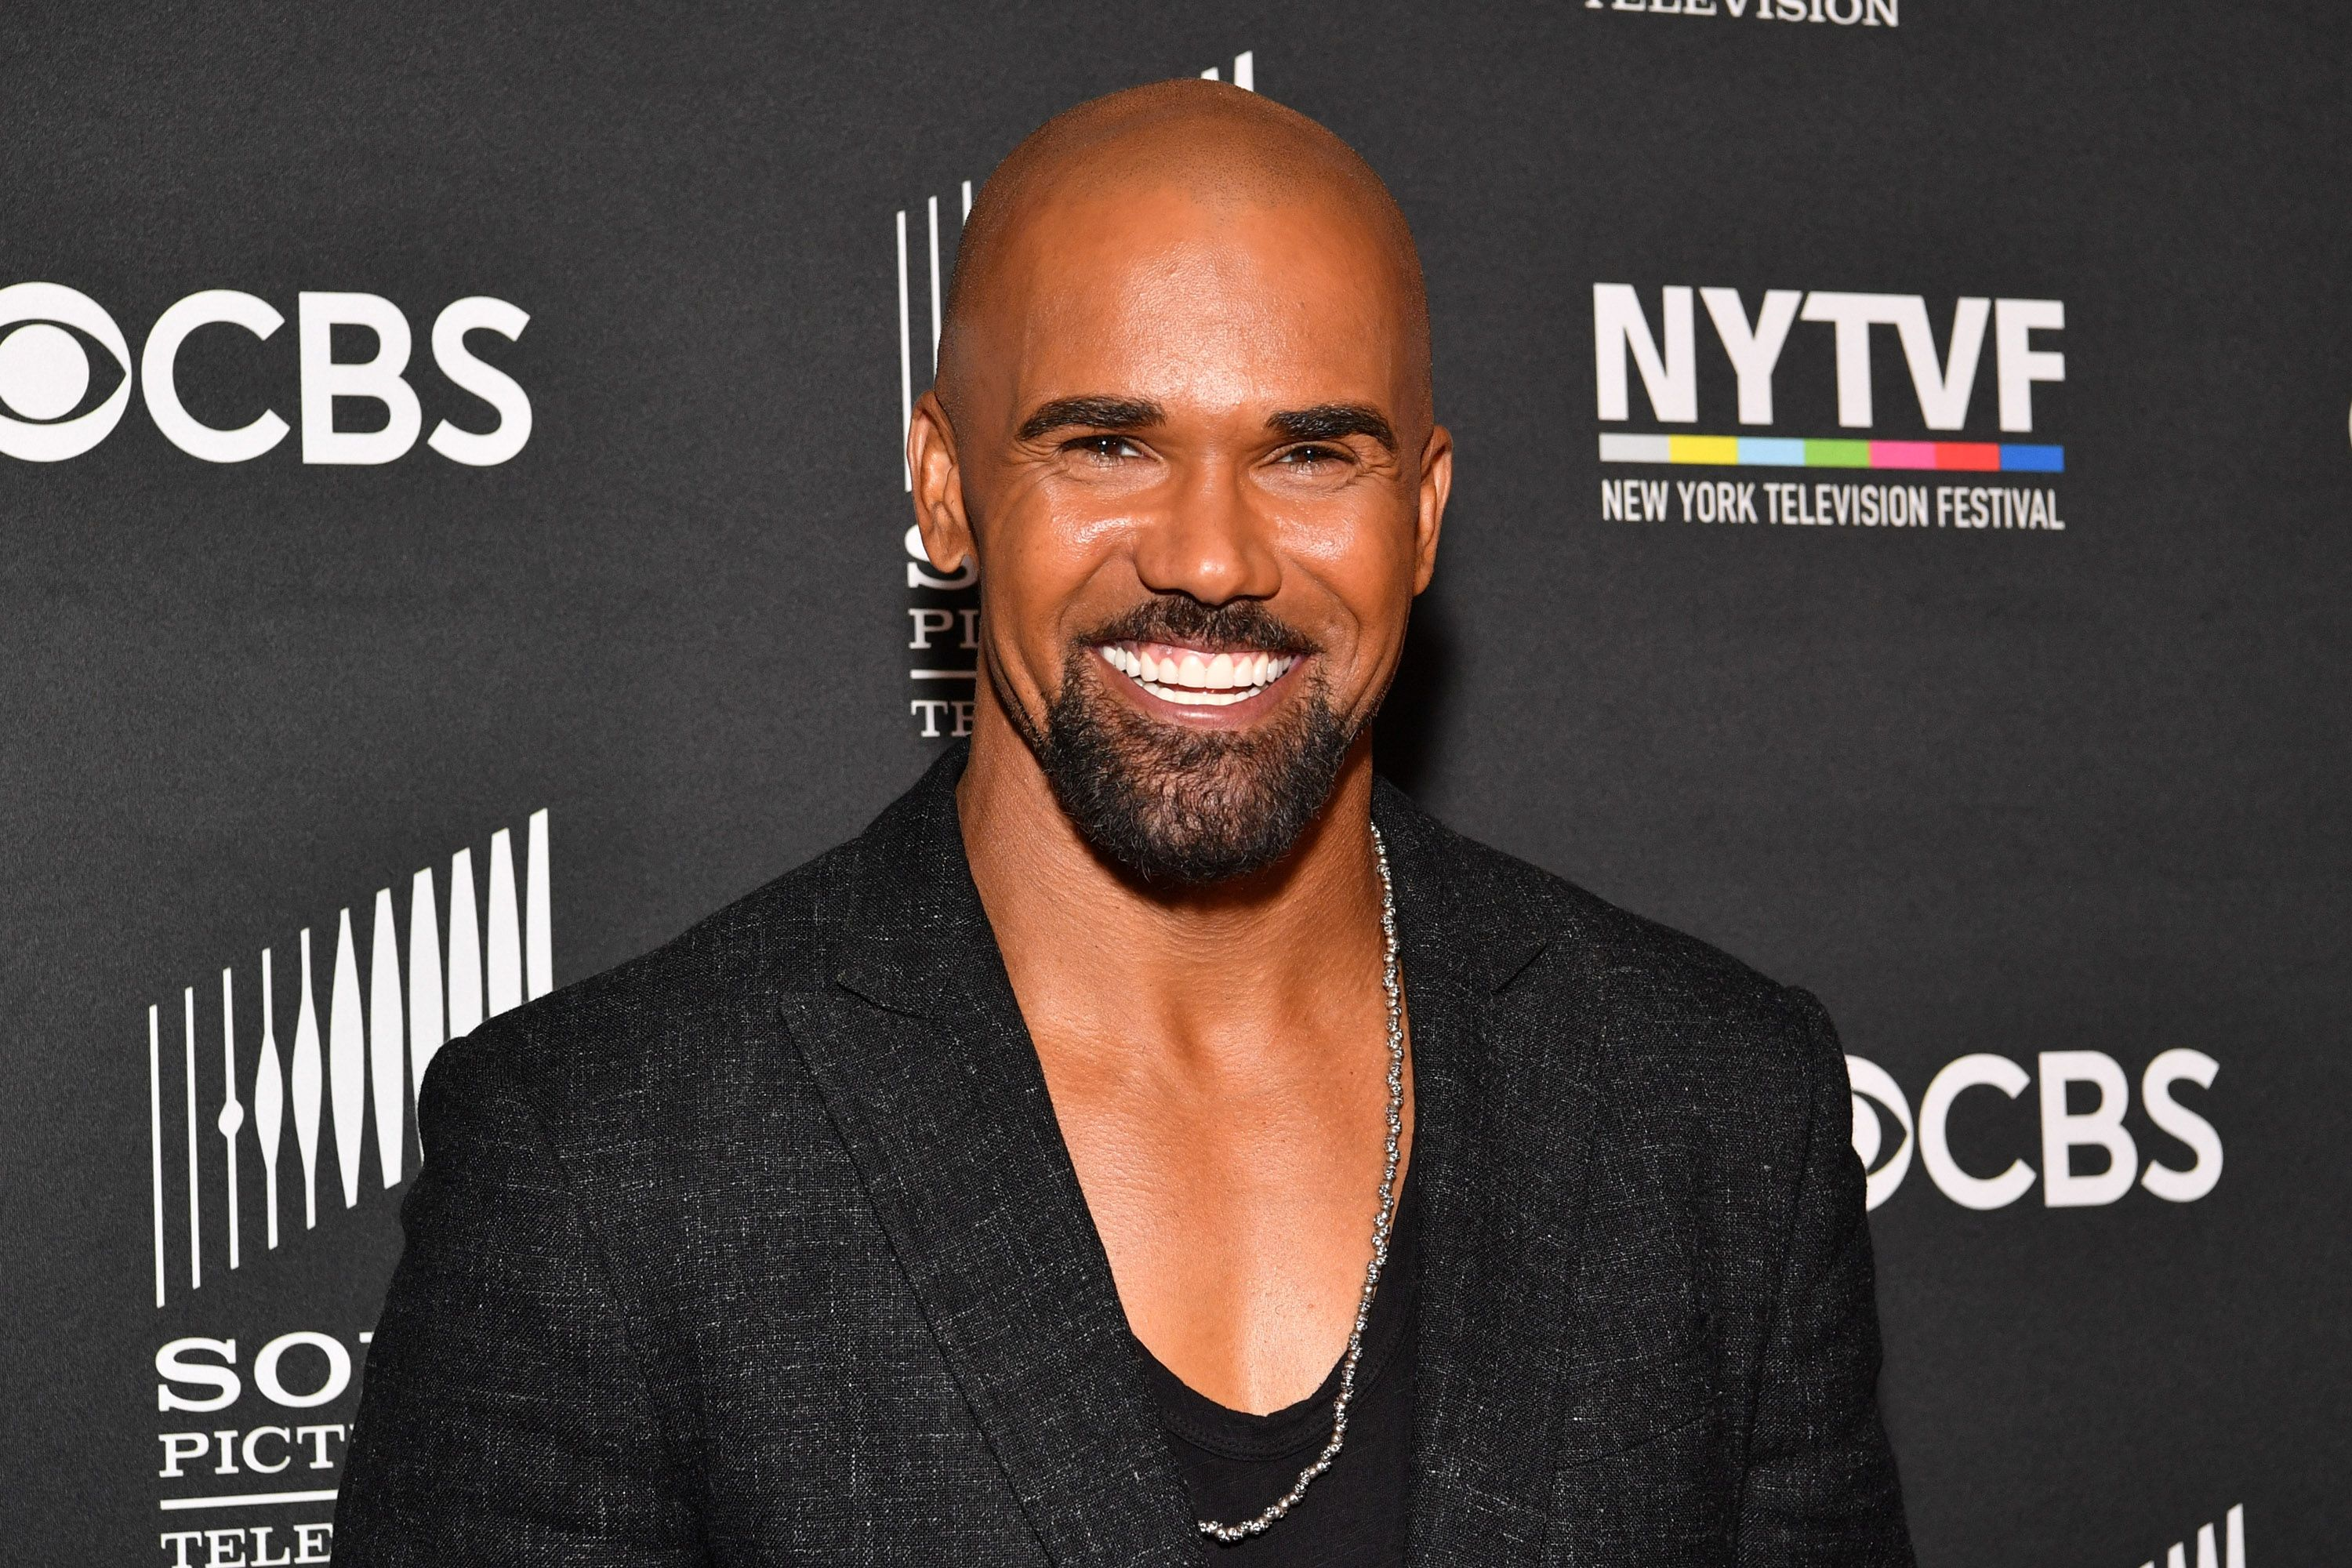 """Shemar Moore at the world premiere of the series """"S.W.A.T.""""  in 2017 in Los Angeles 